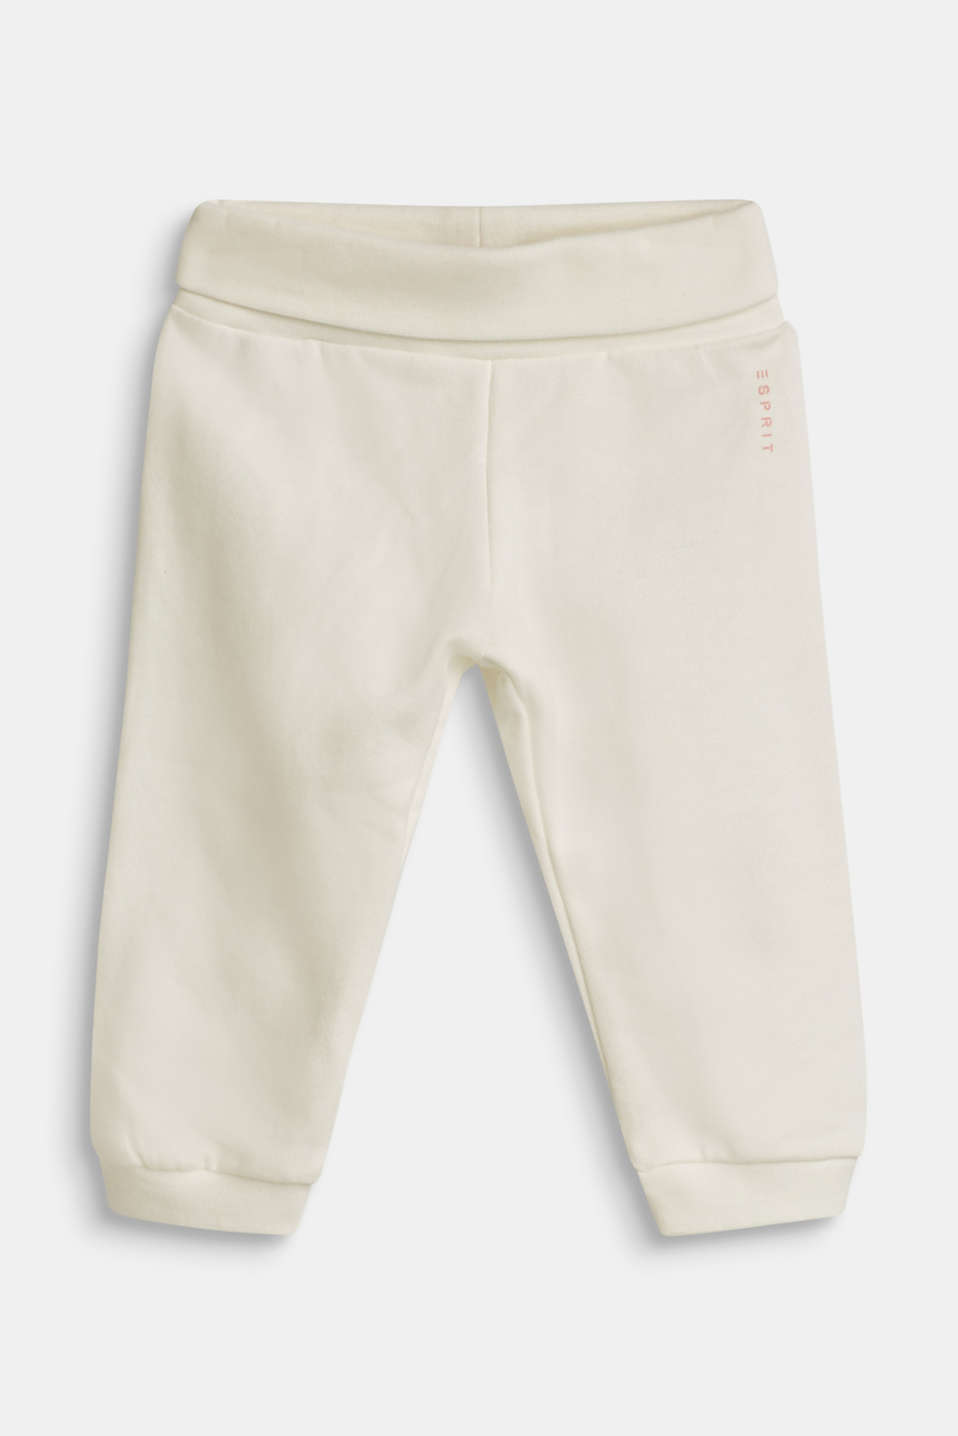 Esprit - Sweatshirt fabric trousers with organic cotton